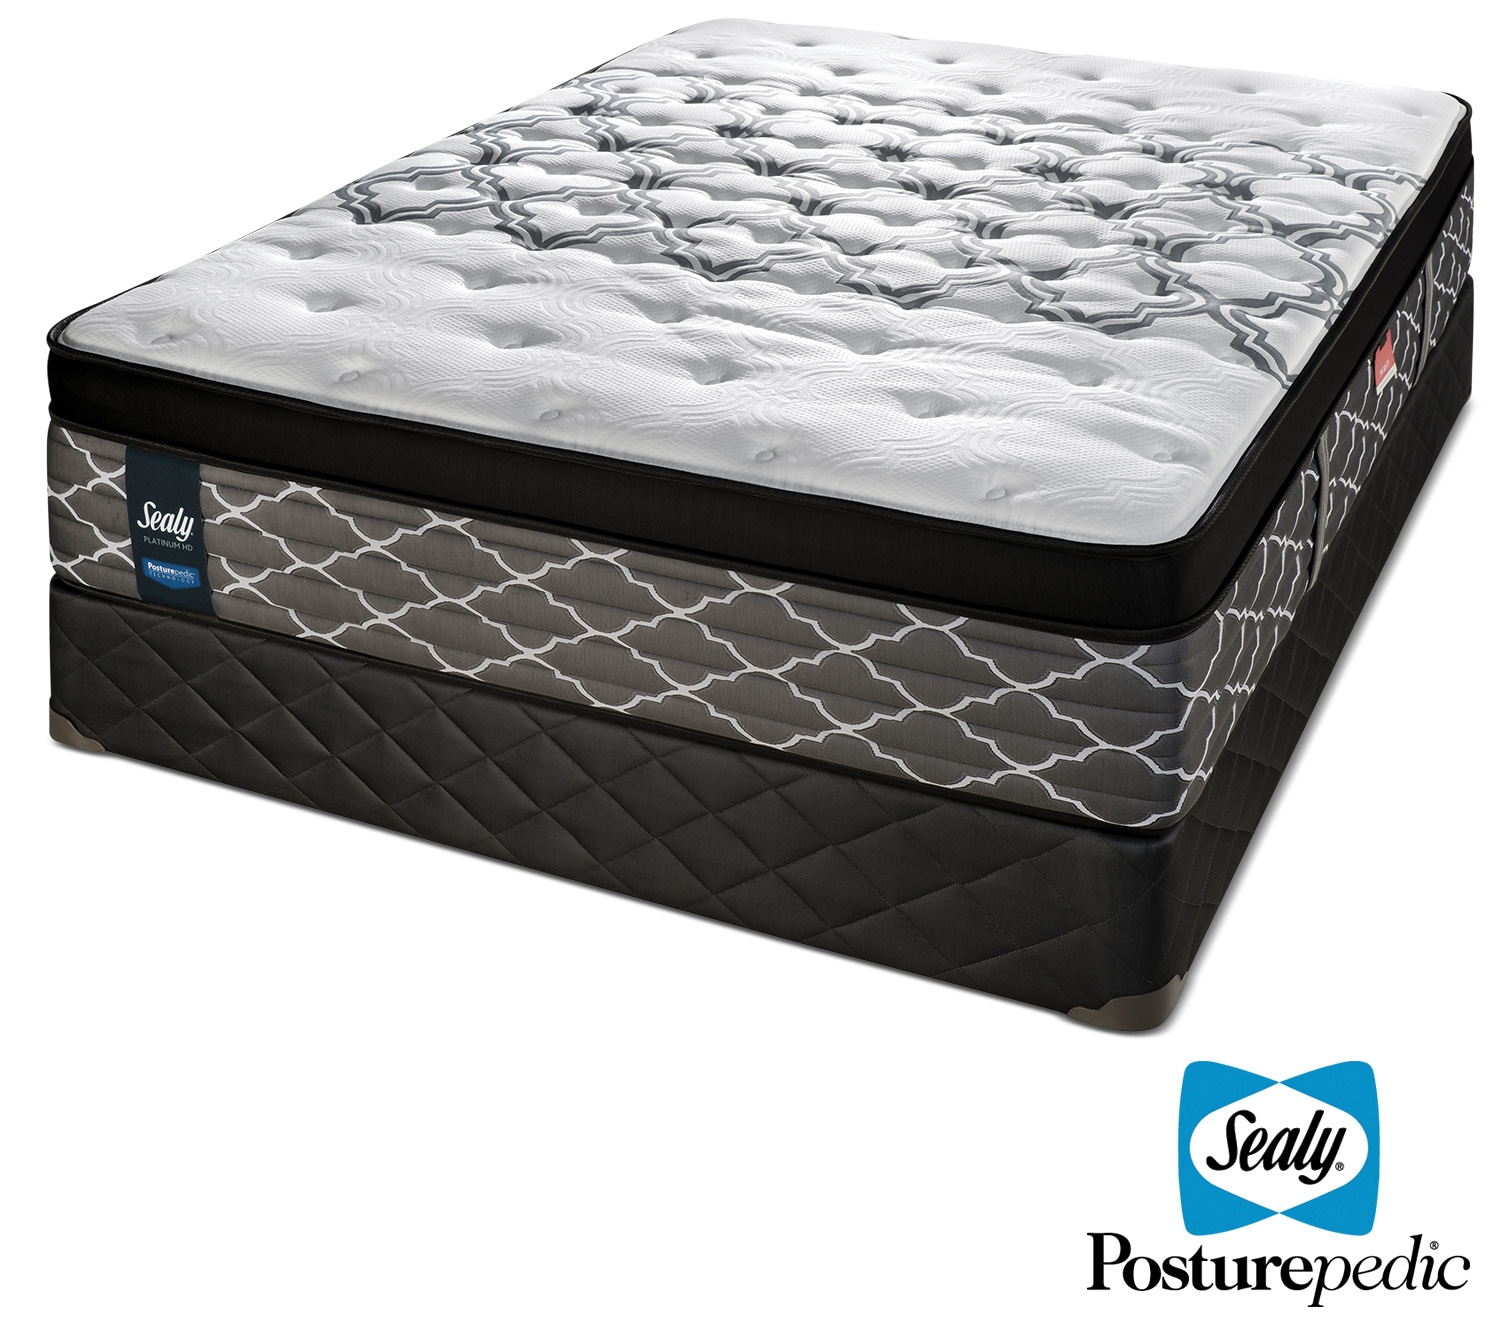 Sealy Dreamy Night Hybrid Firm Queen Mattress and Boxspring Set